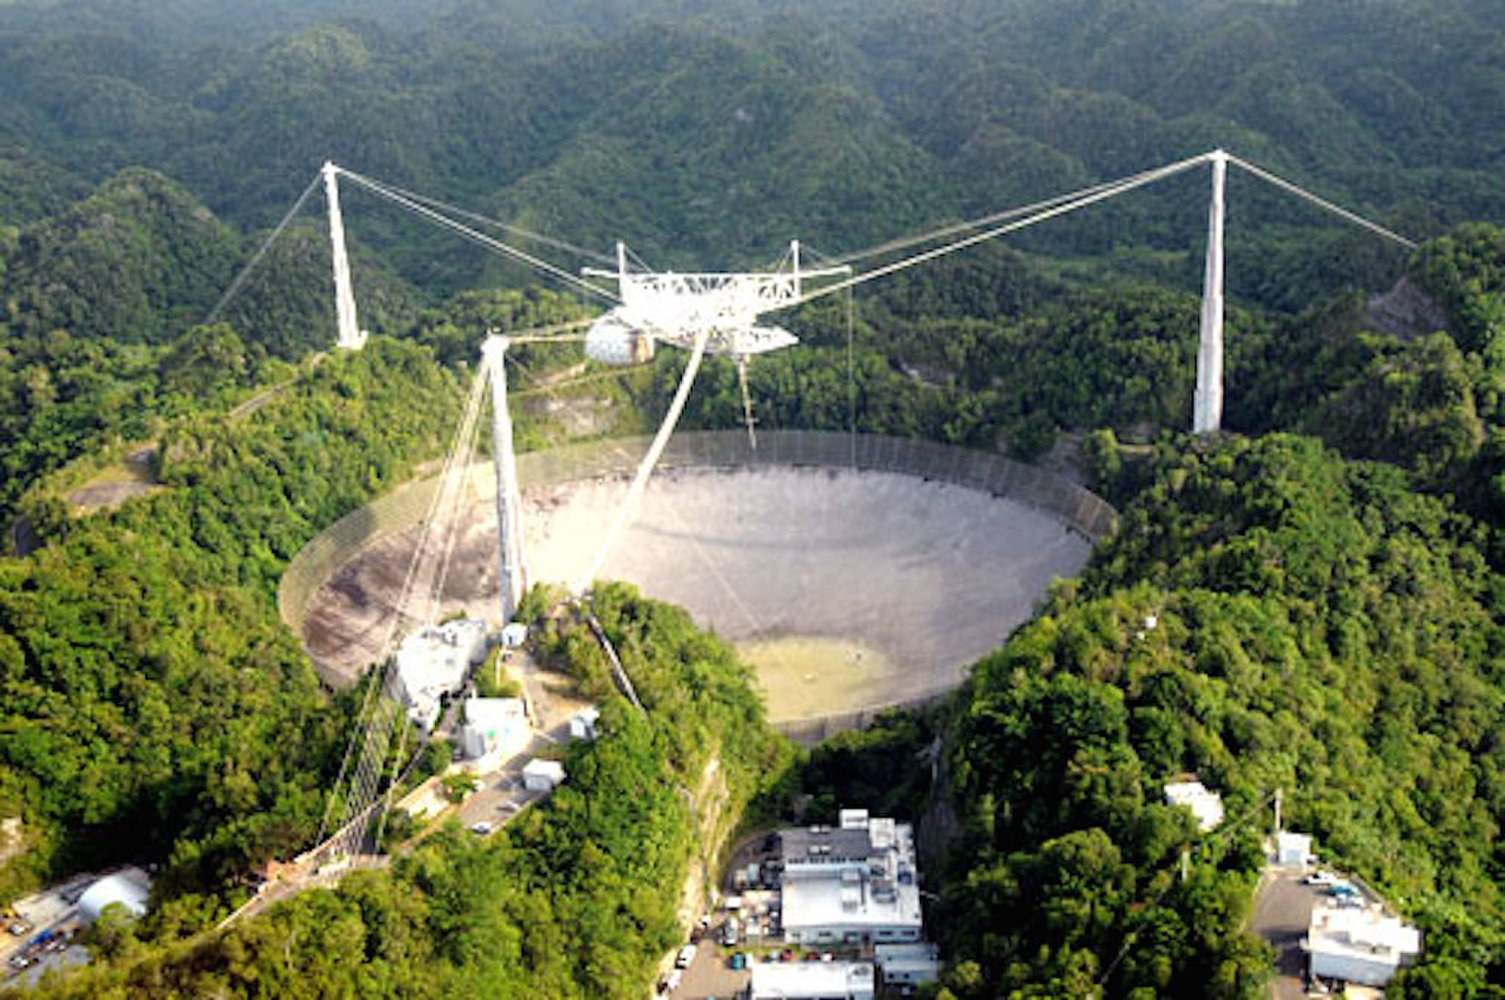 Arecibo Observatory Remains Offline After Being Buffeted by Hurricane Maria https://t.co/01SbQyJmt1 https://t.co/HwVkiJcYnu